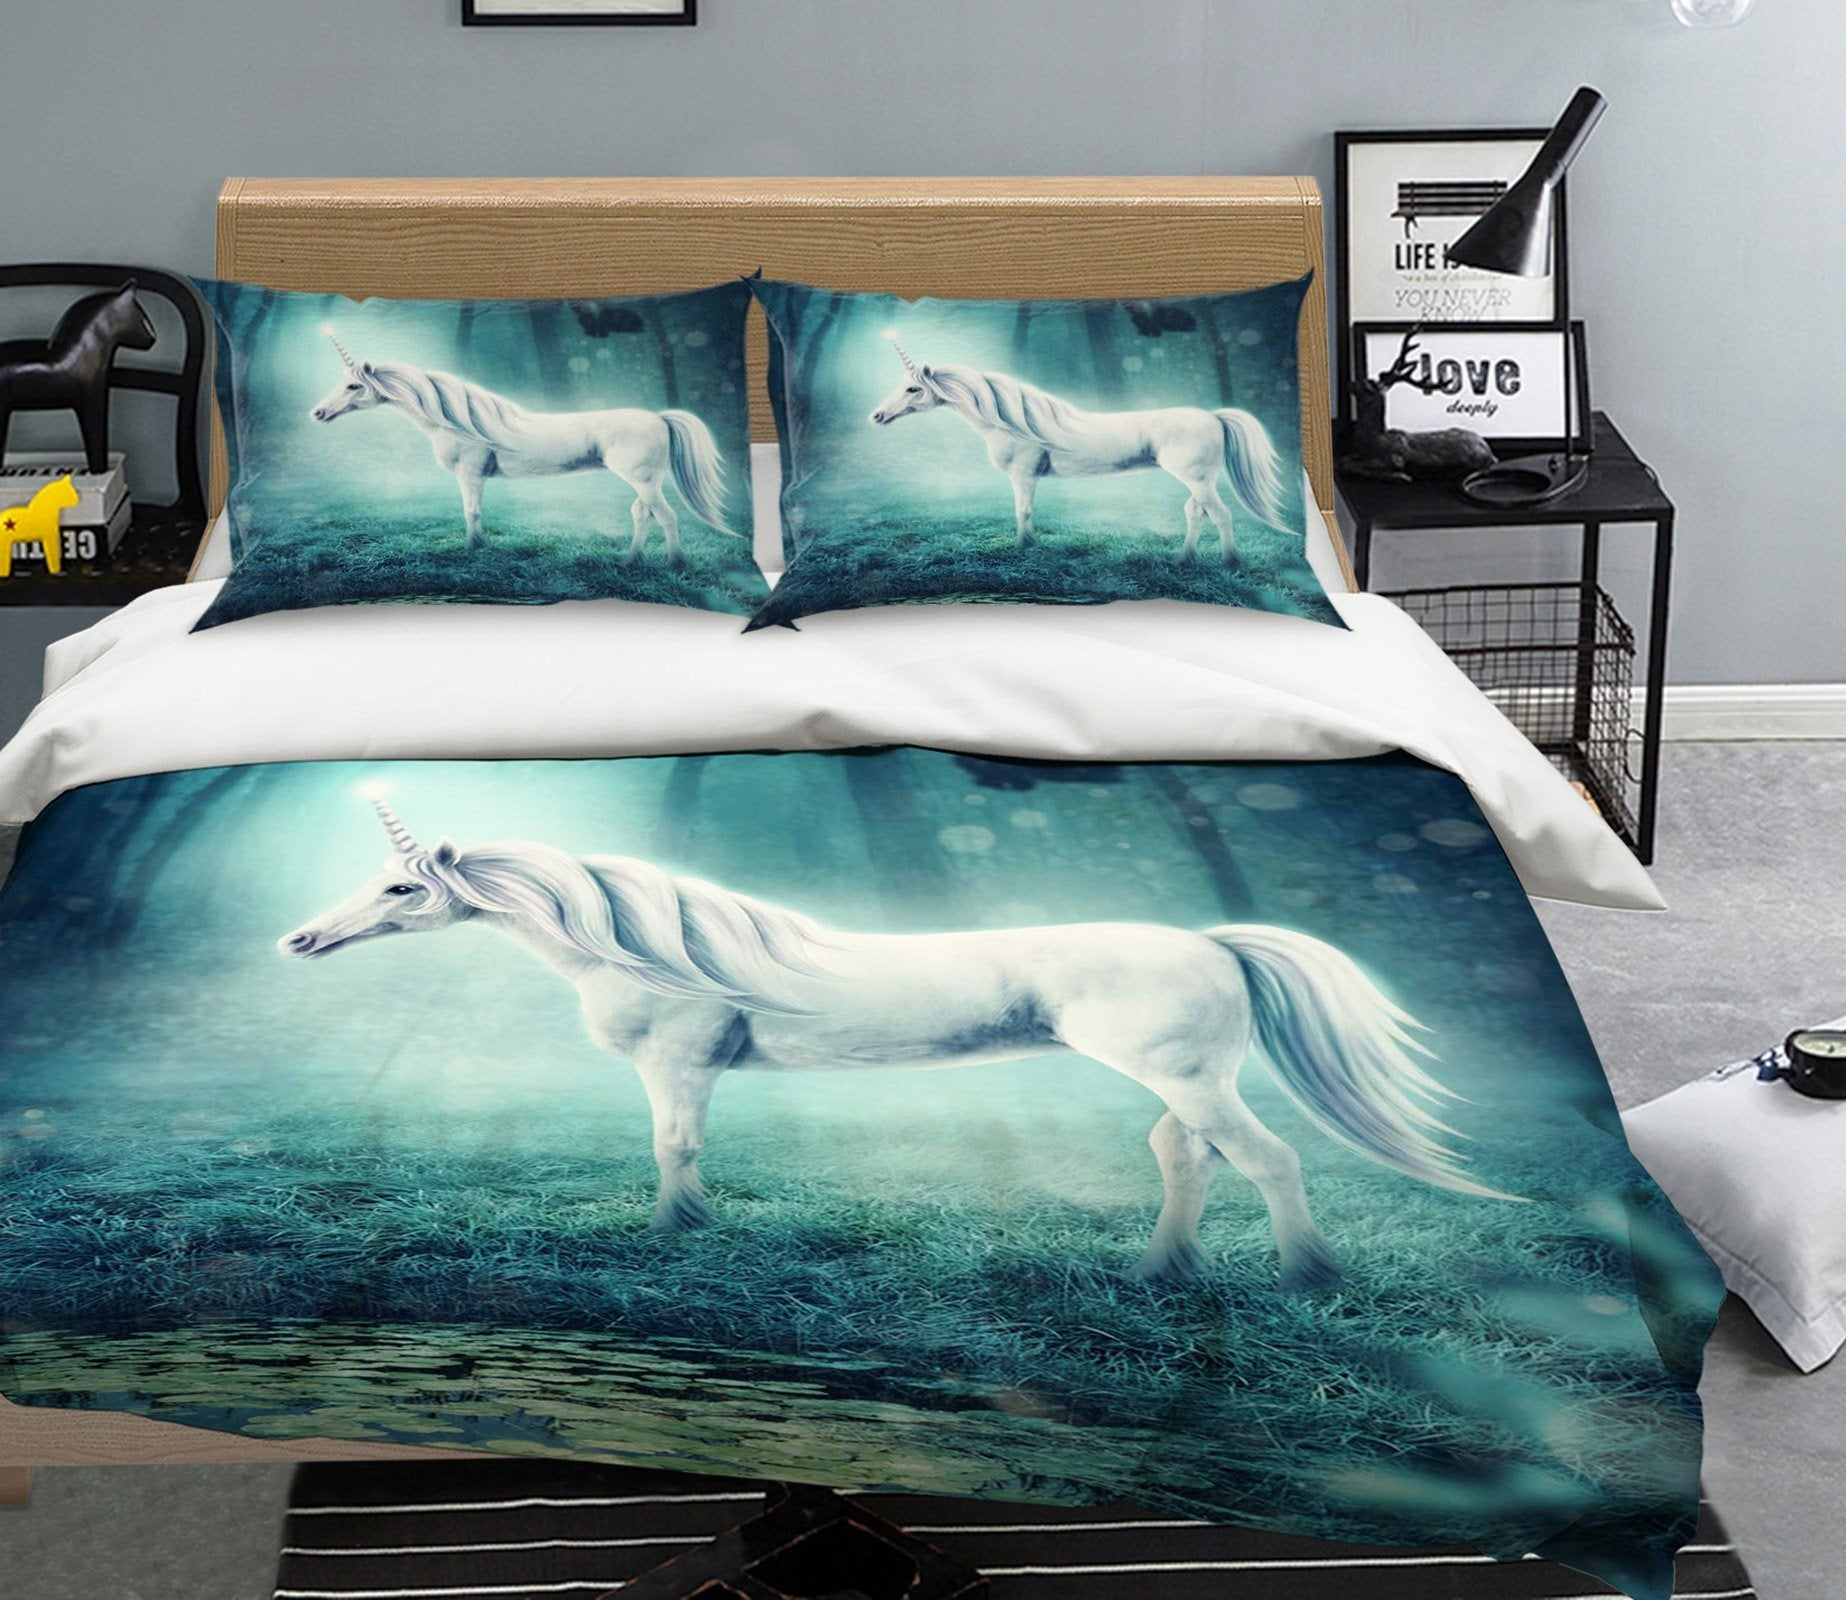 3D Shore Unicorn 048 Bed Pillowcases Quilt Wallpaper AJ Wallpaper